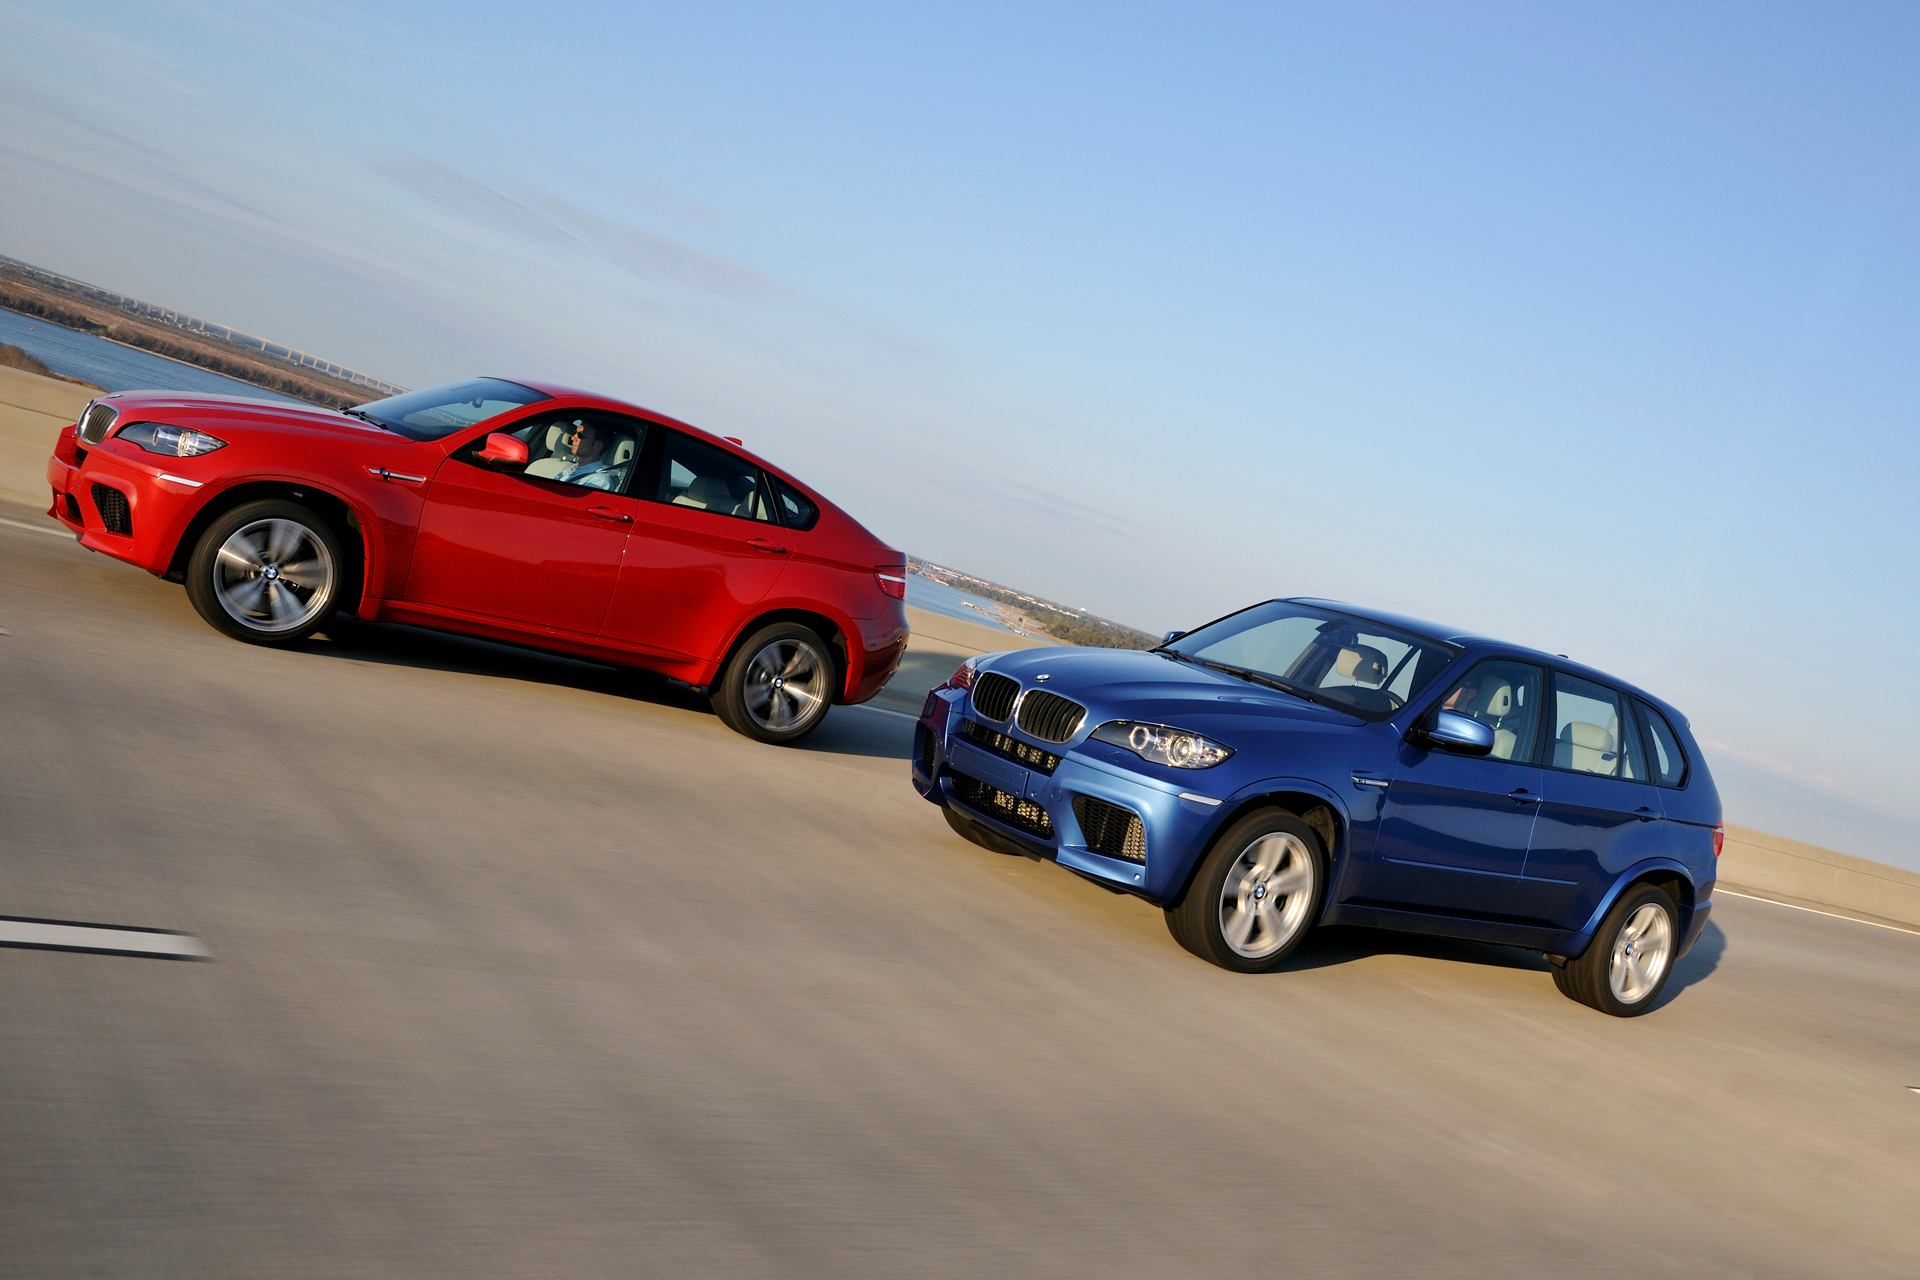 Official Bmw X6 M And X5 M Thread Wallpapers Video